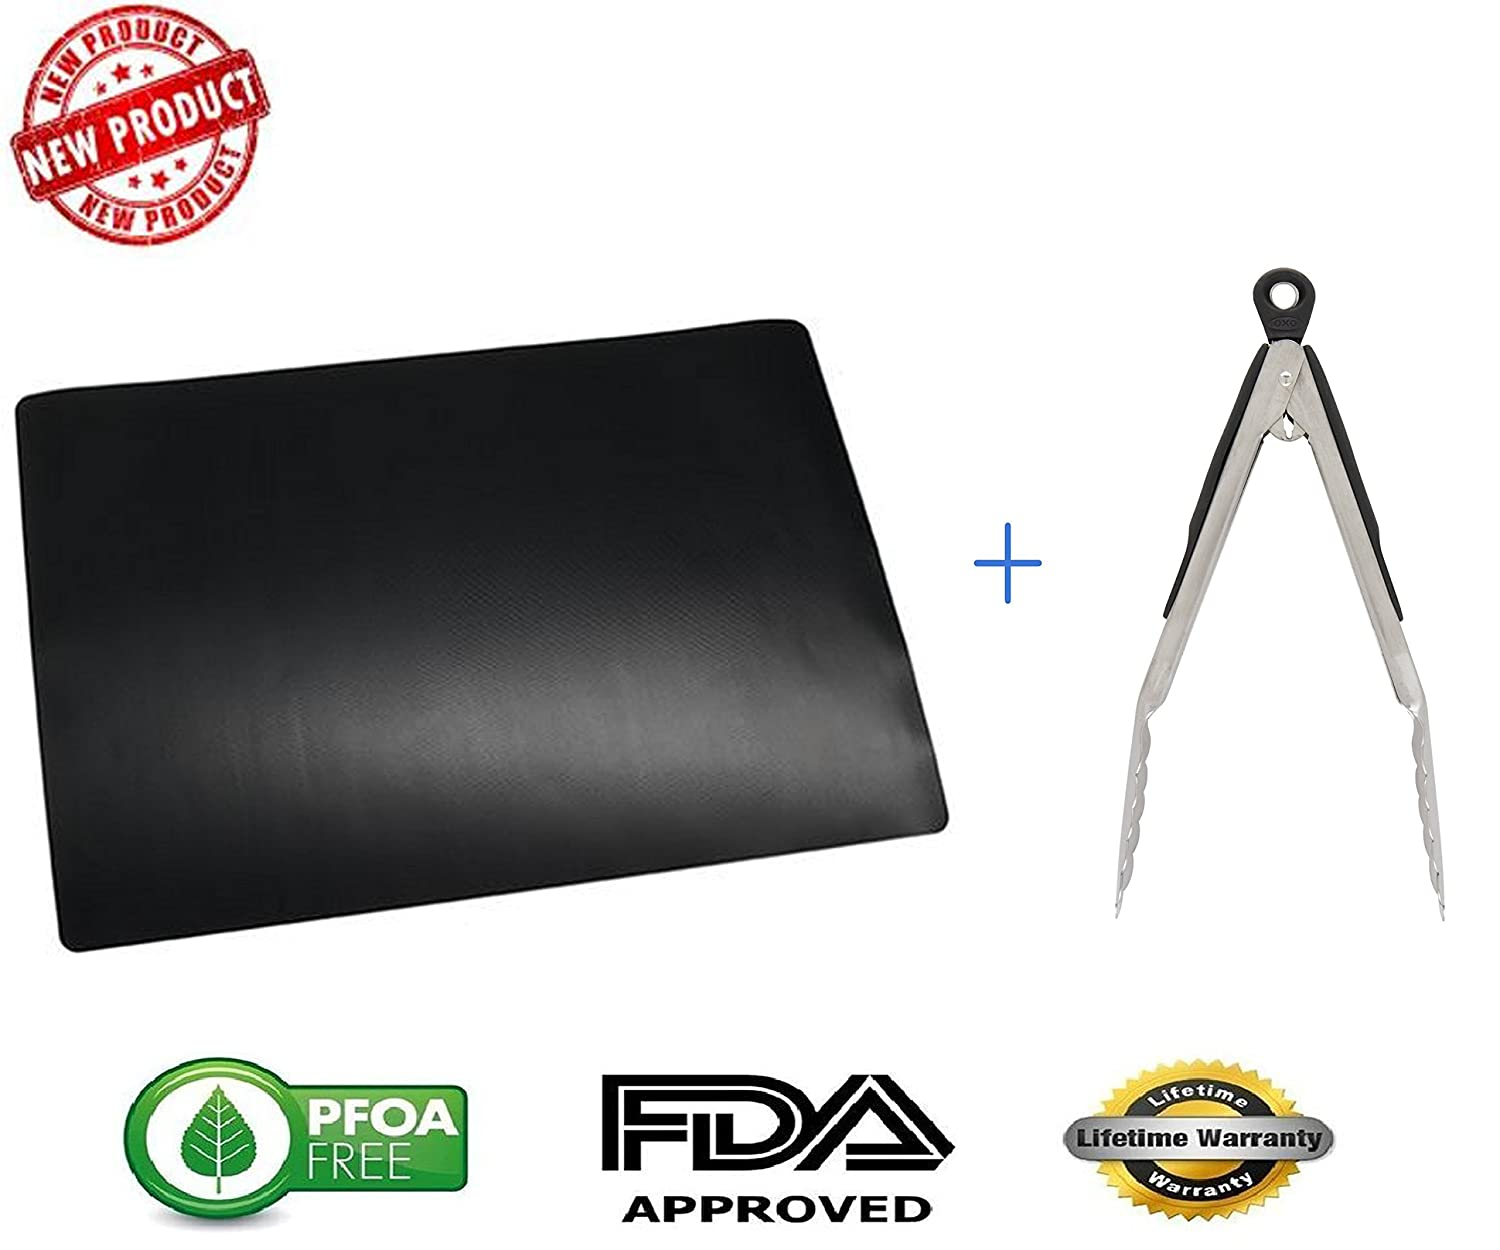 "Extra Large 13""x 16"" BBQ Grill Mat 2 Pack & Stainless Steel Locking Tong Combo - BPA Free - Heavy Duty Use for Baking & Gas, Charcoal, & Electric Grills Brekky COMINHKPR151880"